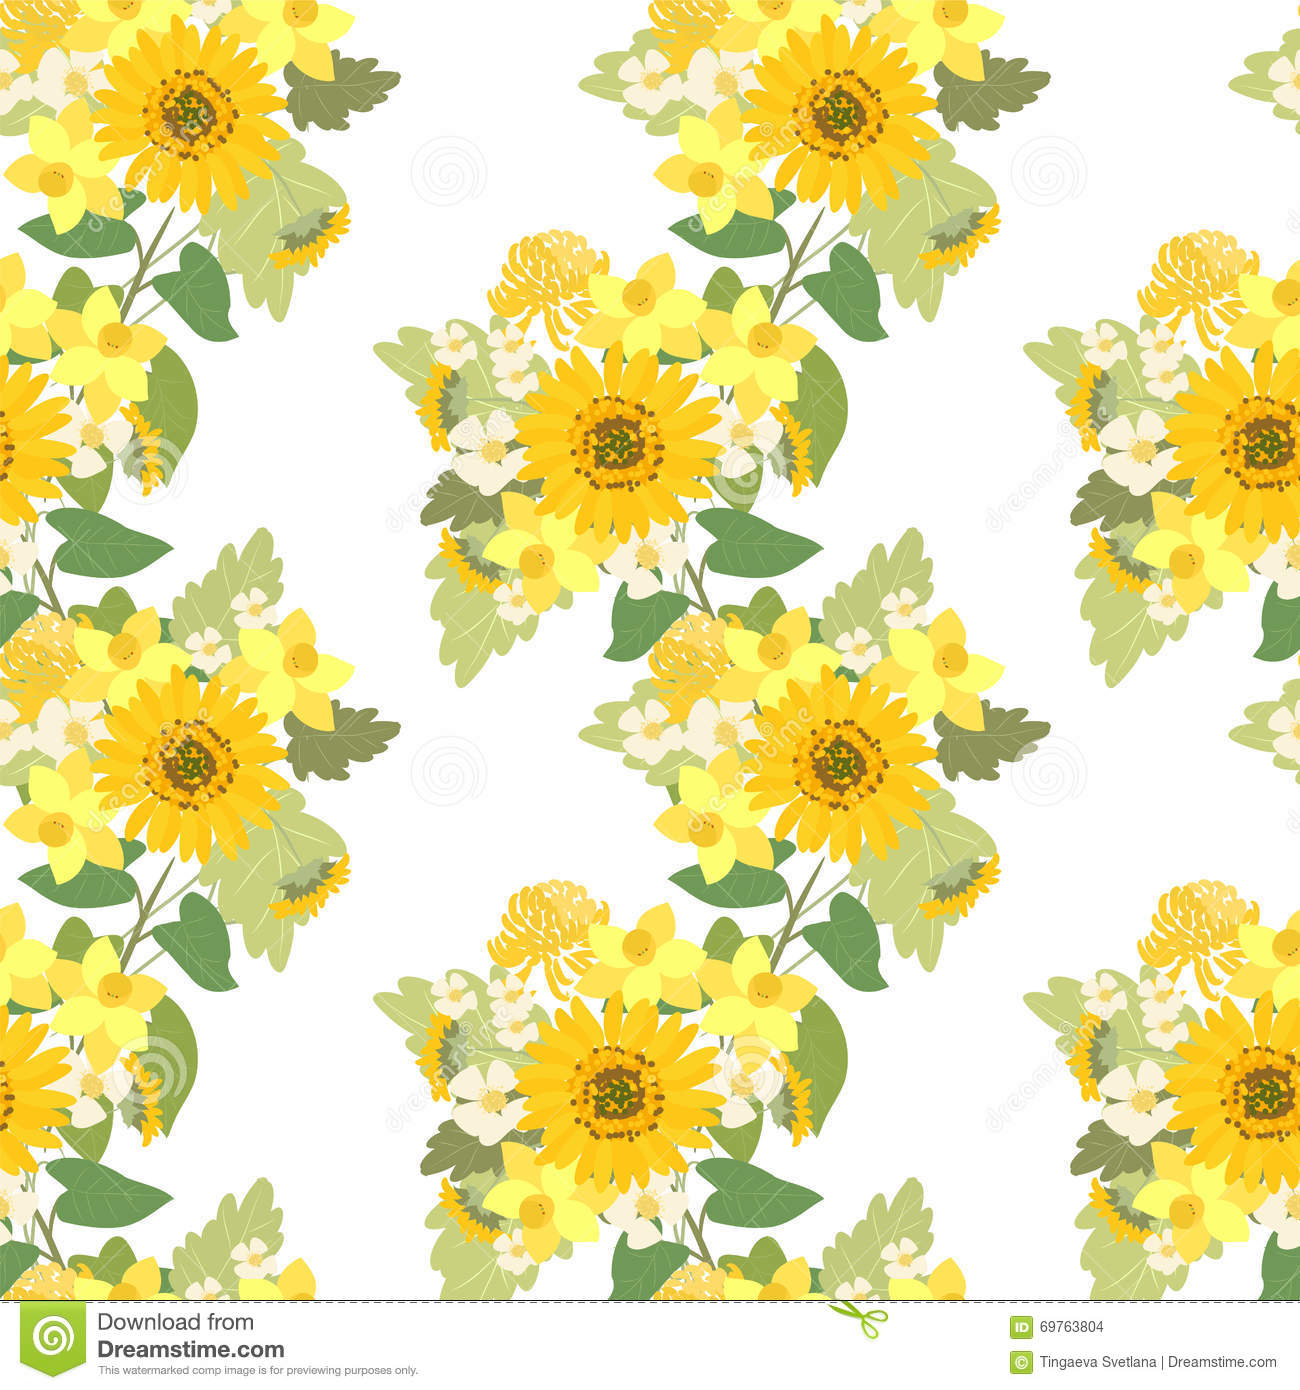 Floral Sunflower Narcissus Strawberry Flowers Retro Vintage Background